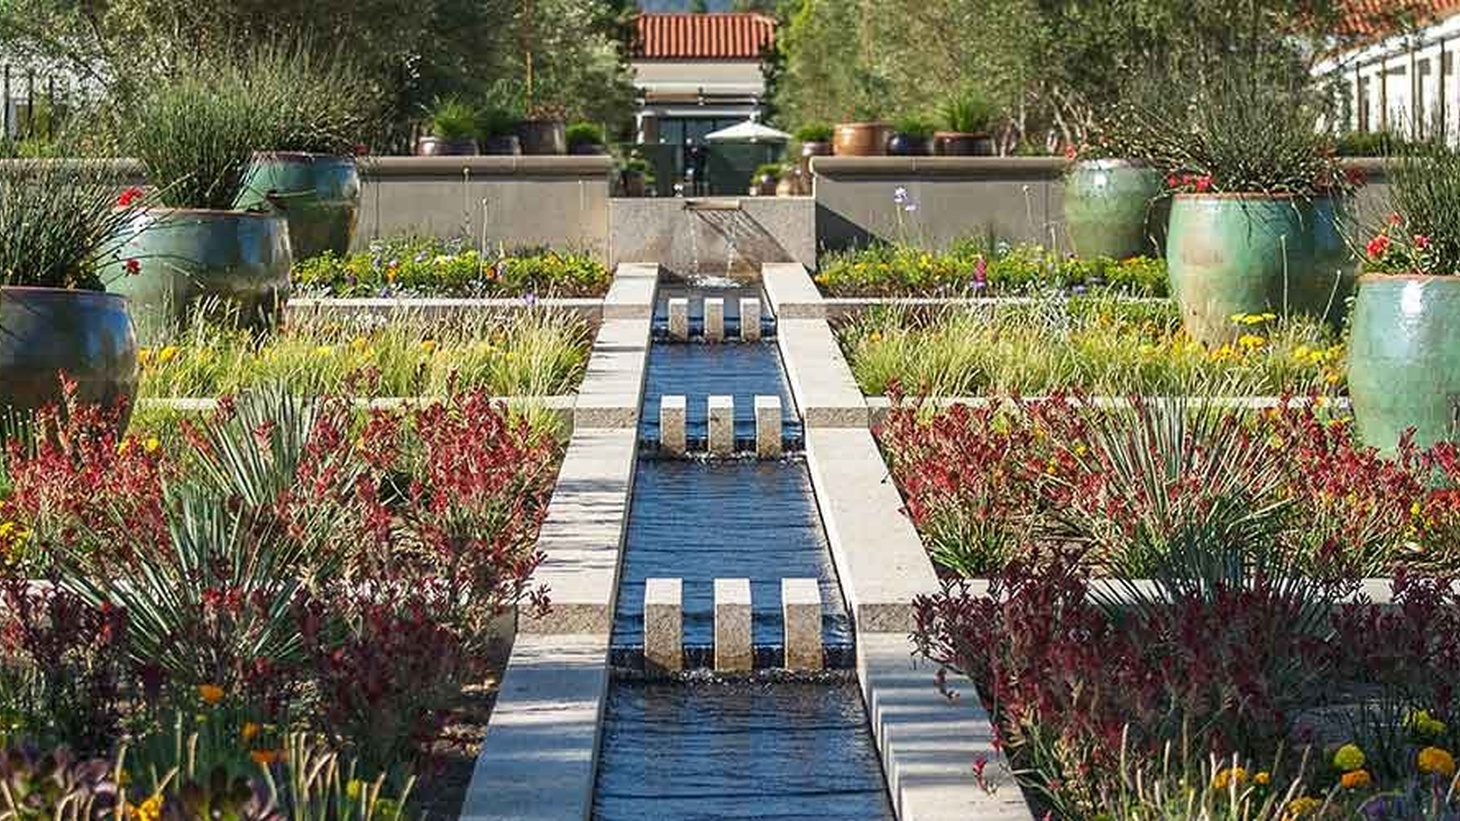 Entry garden at the Huntington Library, Art Museum, and Botanical Gardens in San Marino